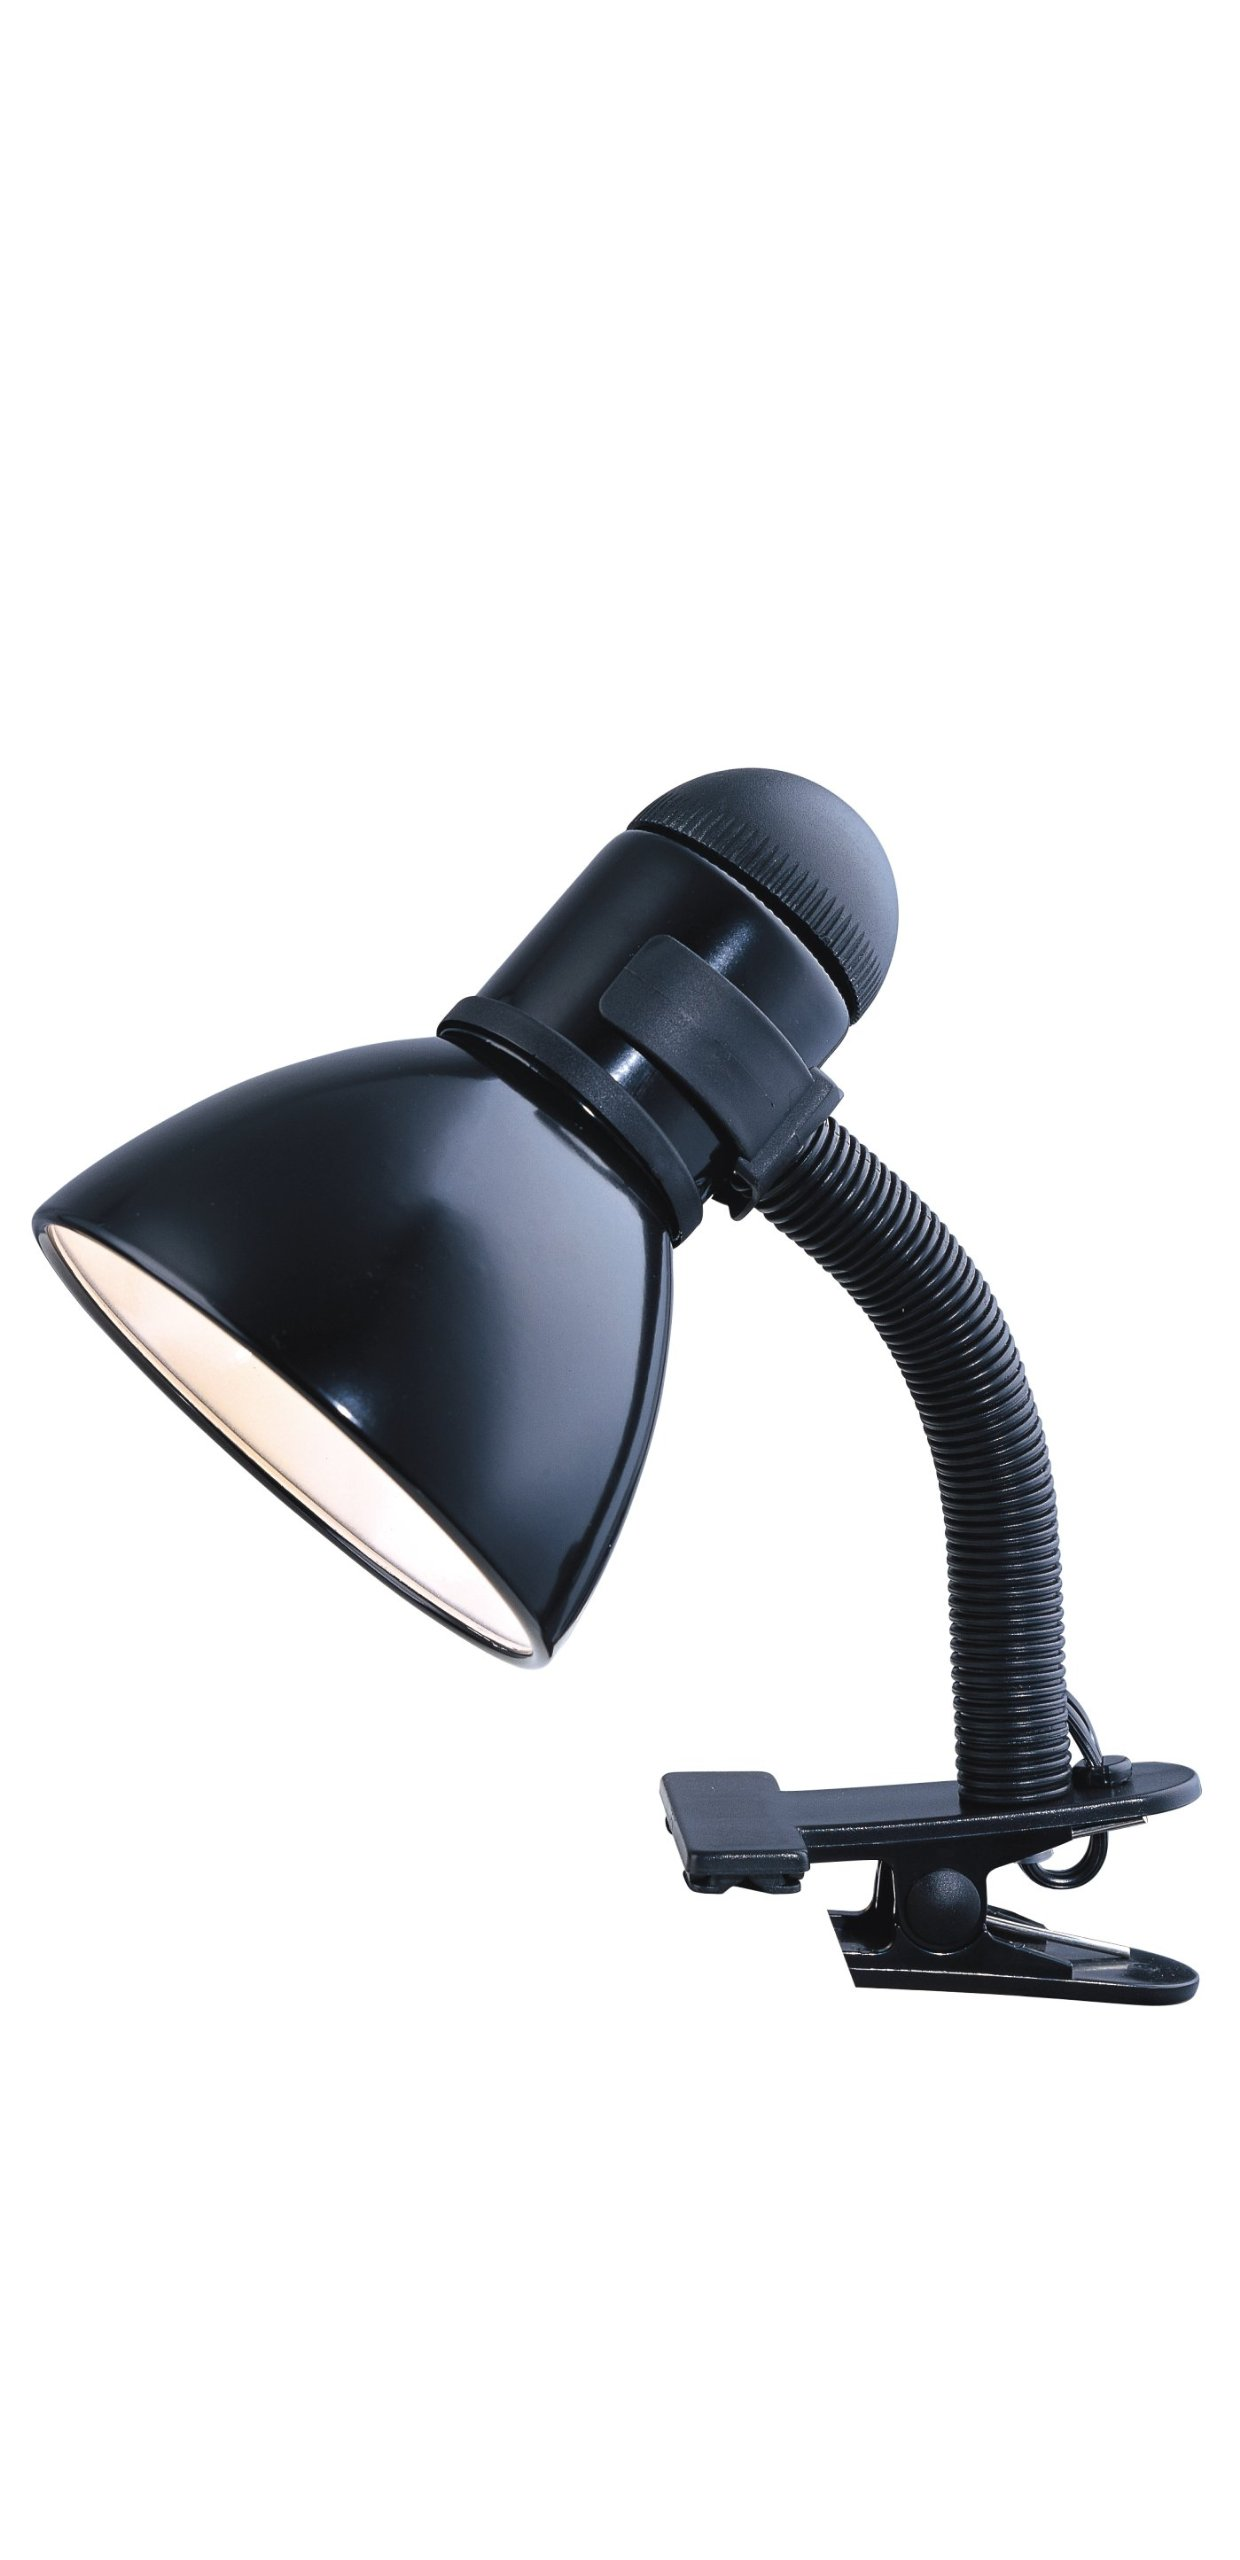 Park Madison Lighting PMD-9814-31 Incandescent Clamp-A Lamp with Adjustable Gooseneck Column and Oversized Turn Knob Switch in Black Finish, 11 1/4'' Tall